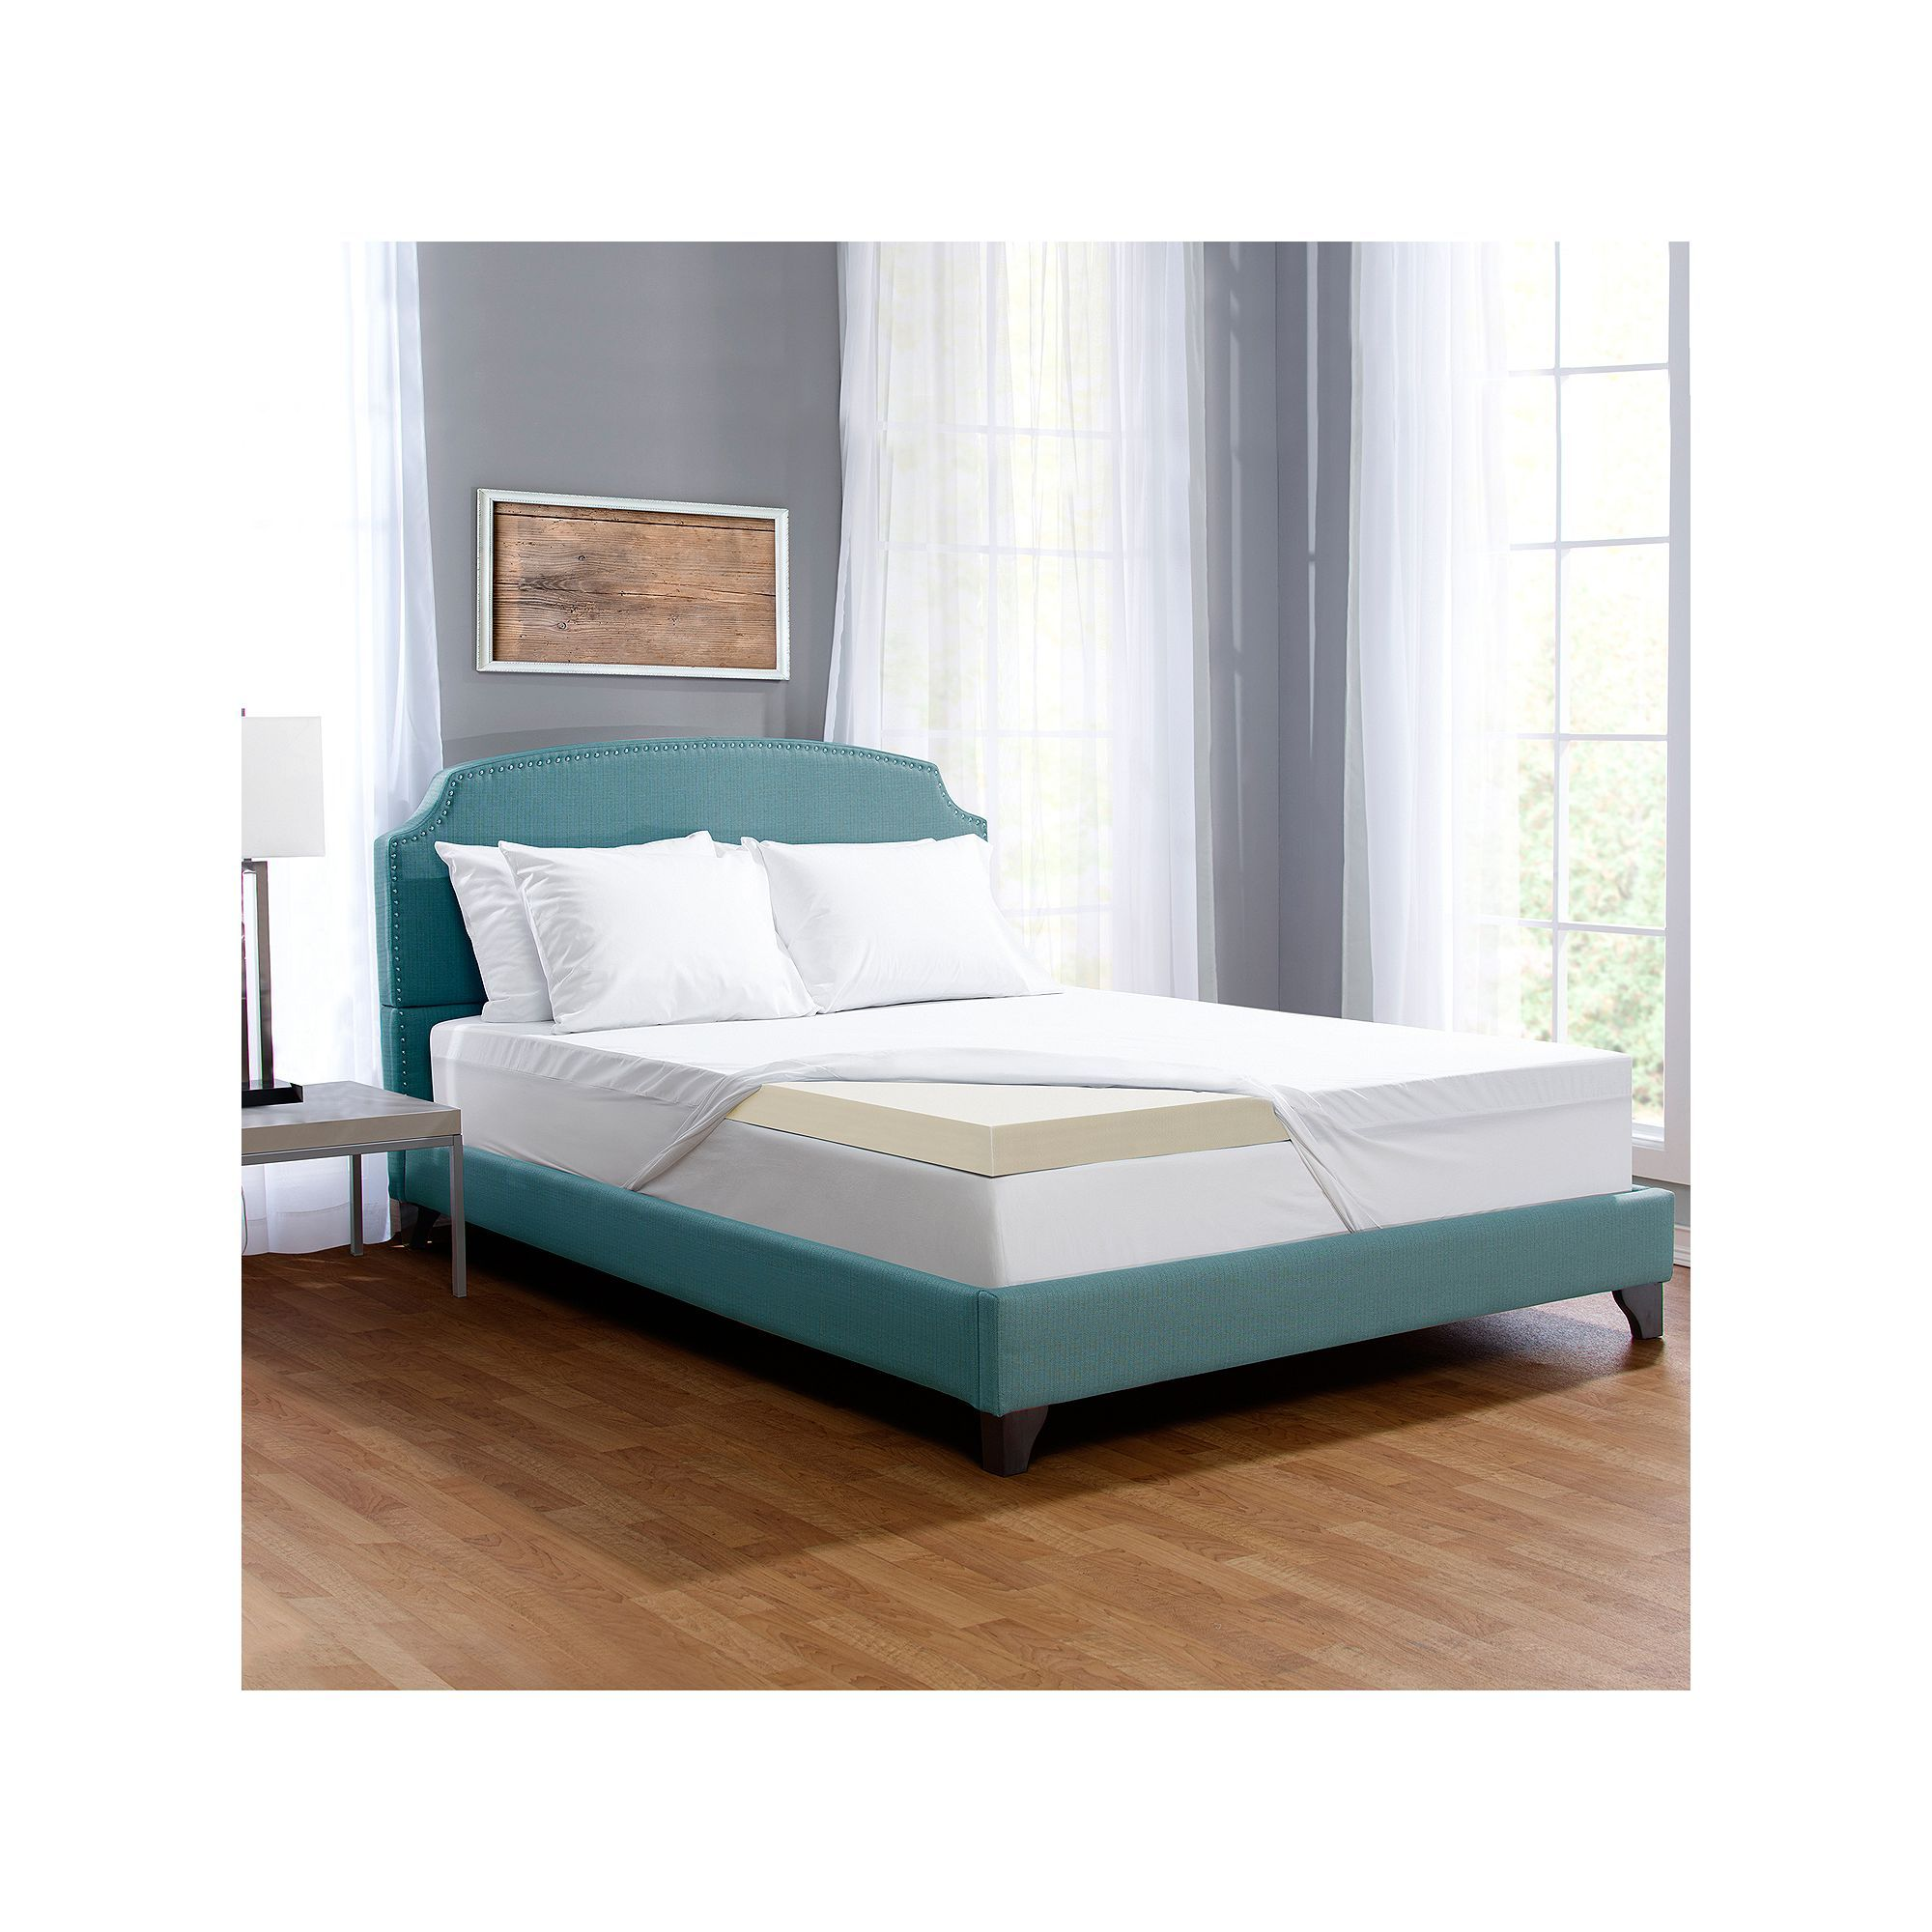 of comfort touch free deluxe serta mattress bedding inch foam topper product bath memory